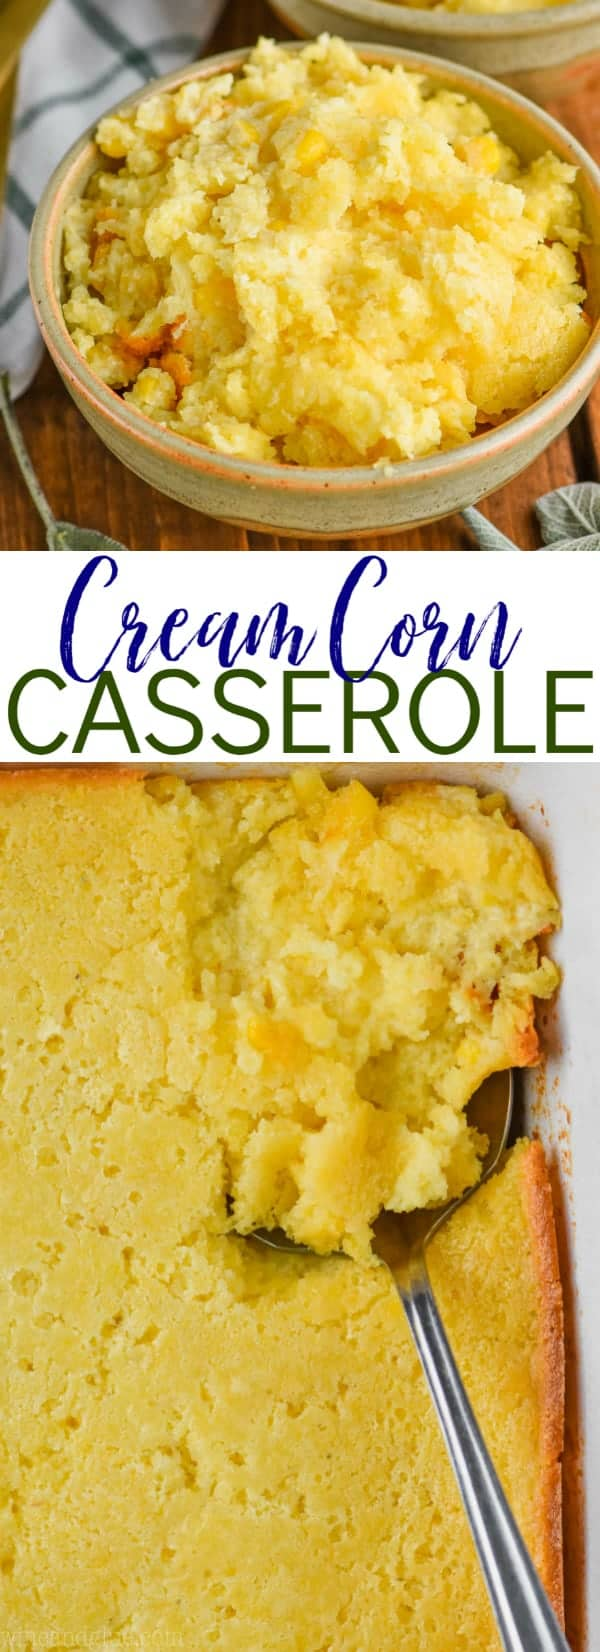 cream corn casserole photo collage